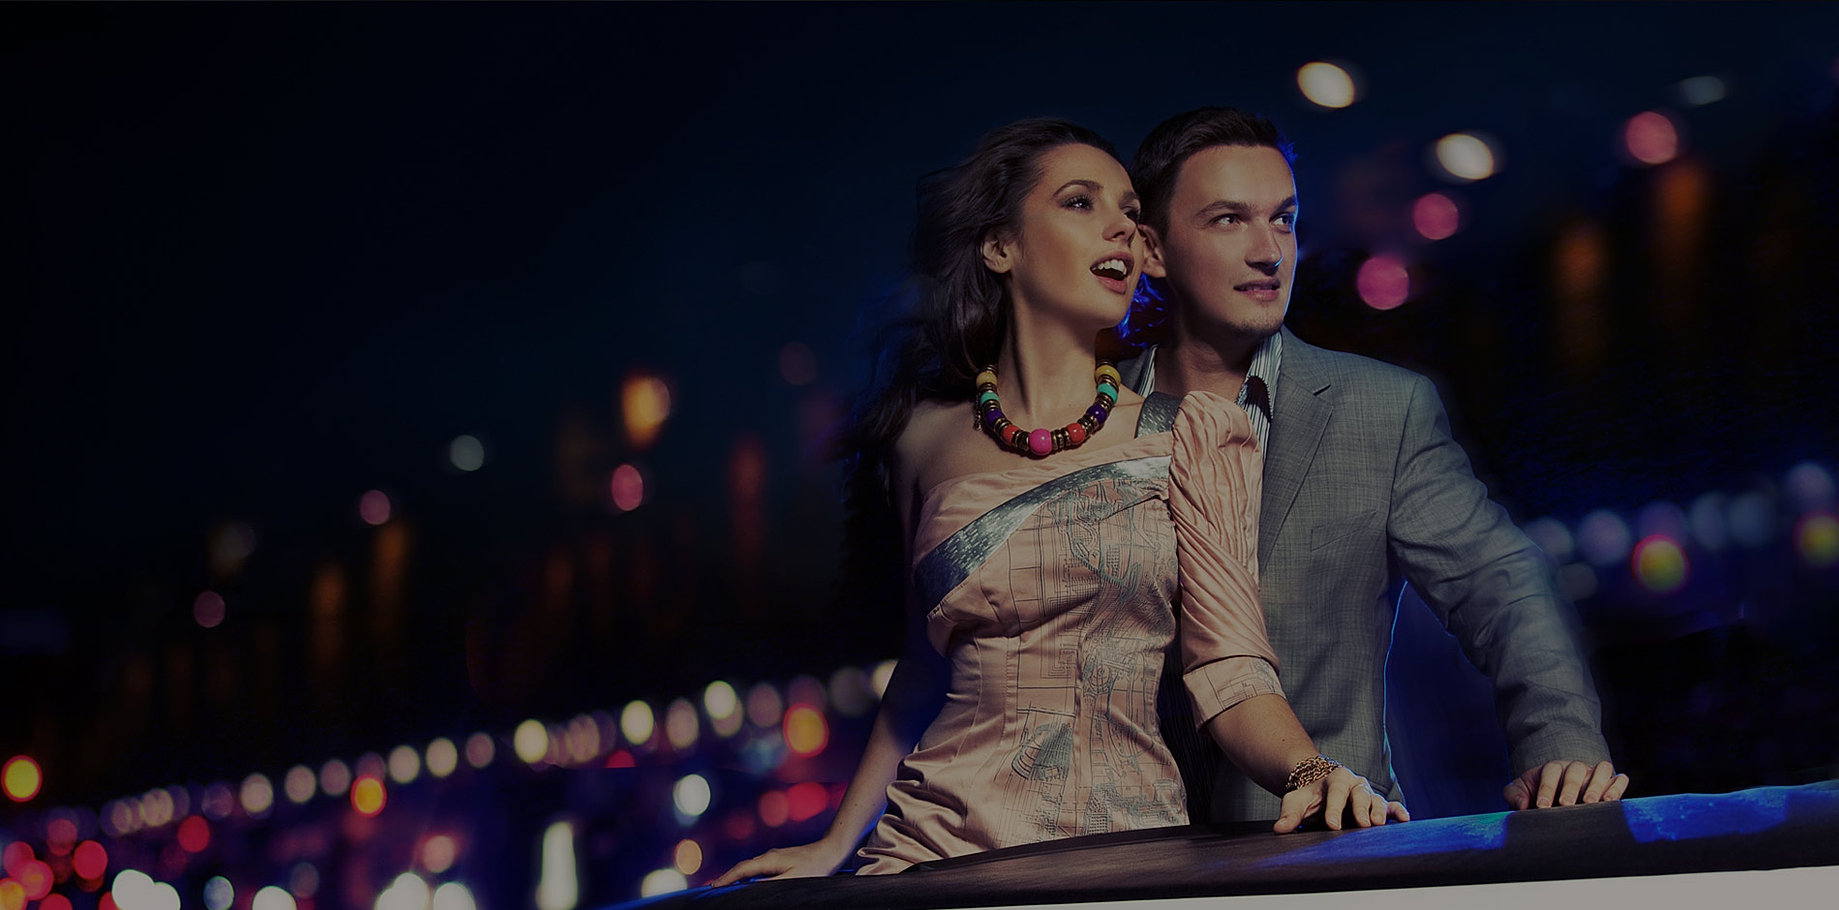 Cost Of Car Service To Jfk From Woodcliff Lake Nj